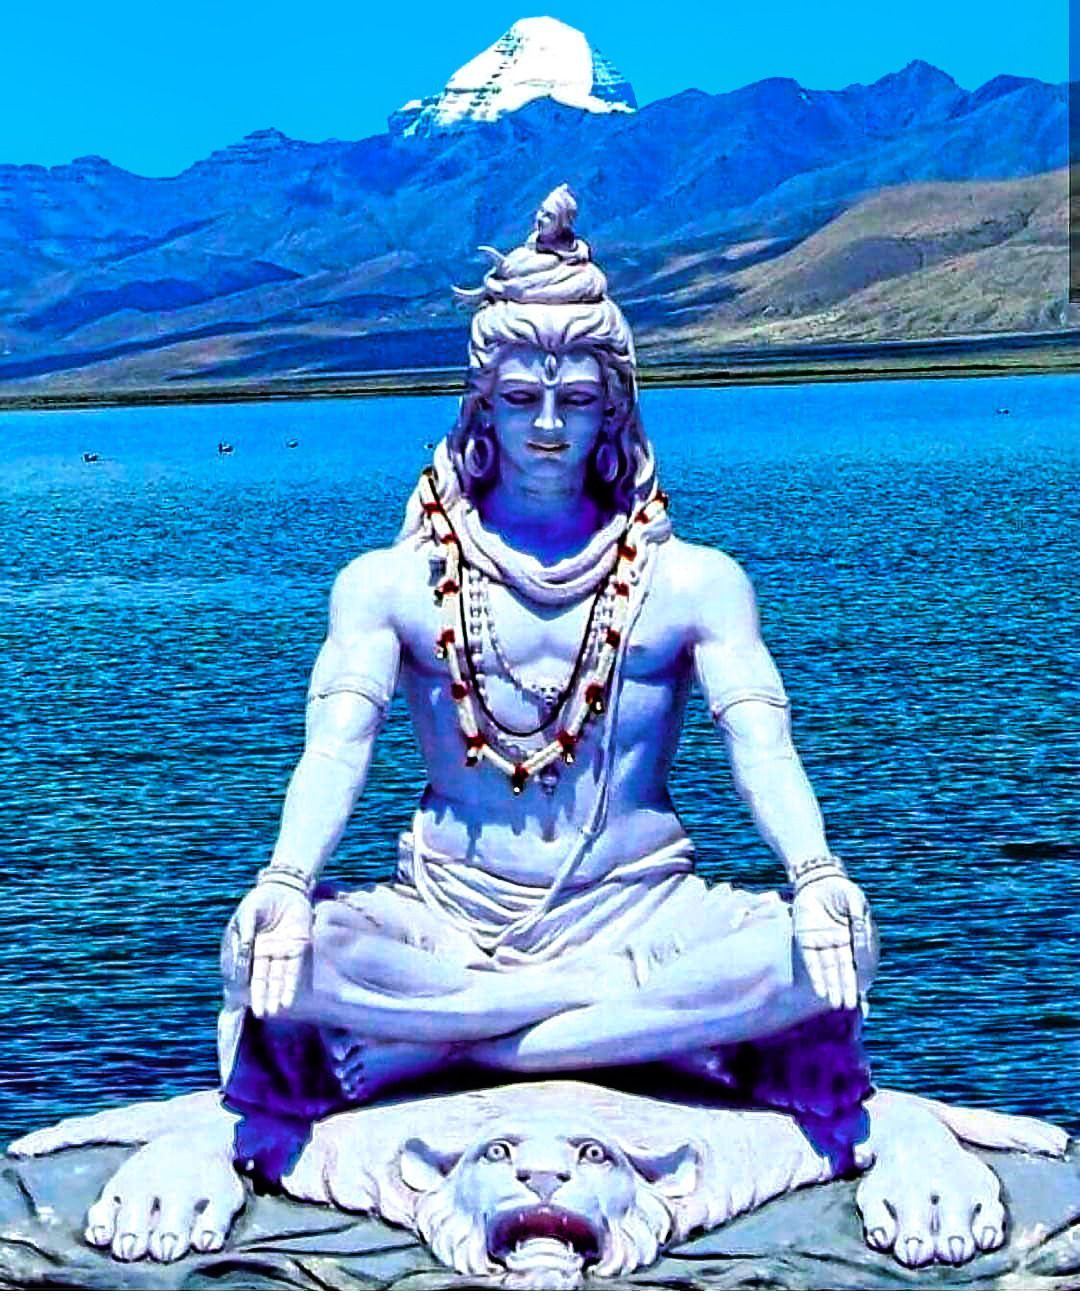 280 Har Har Mahadev Full Hd Photos 1080p Wallpapers Download Free Images 2020 Happy New Year 2020 In 2020 Lord Shiva Statue Lord Shiva Pics Shiva Parvati Images